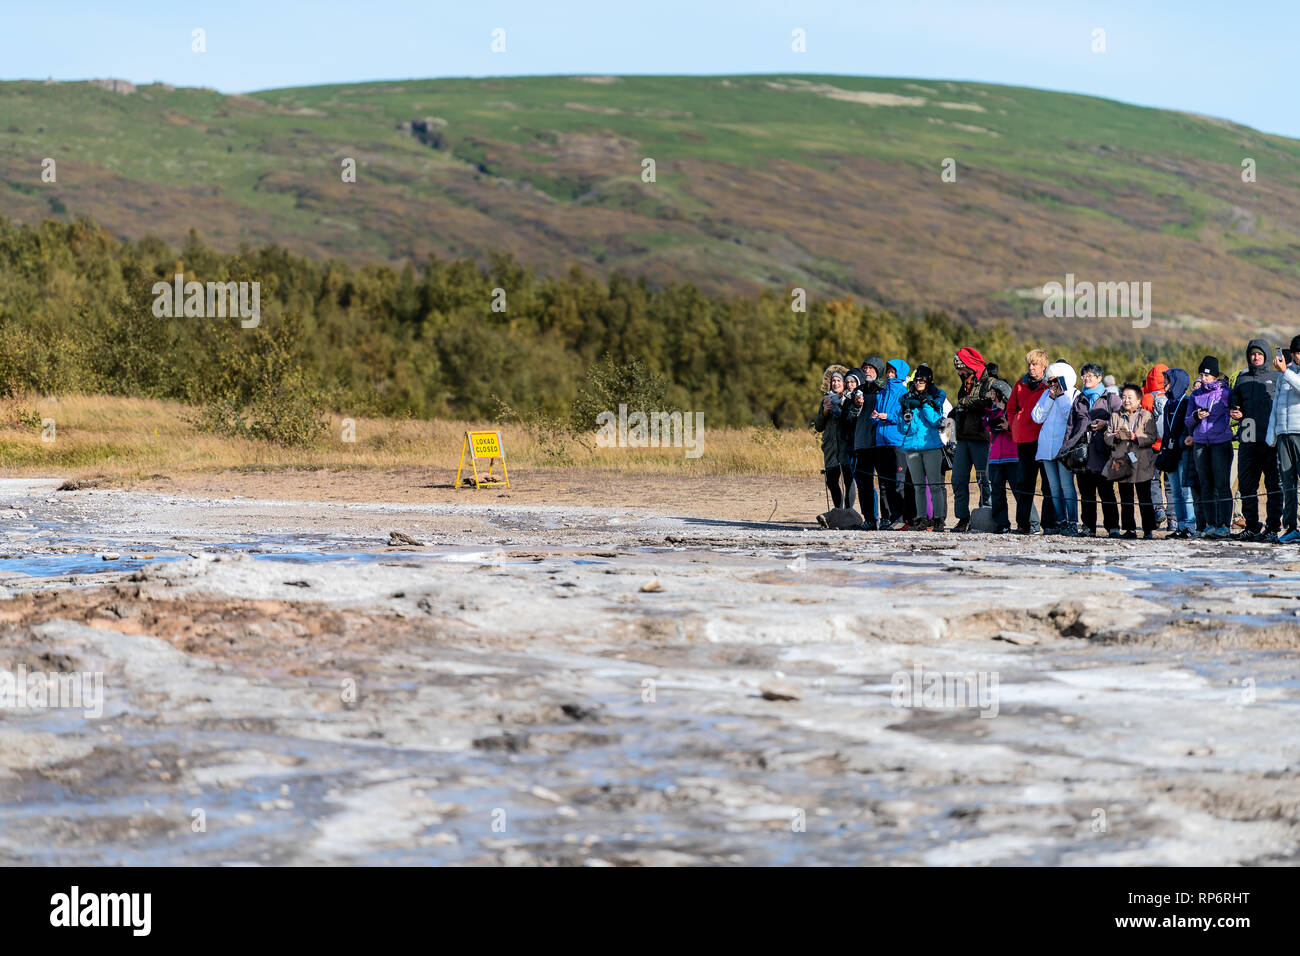 Haukadalur Valley, Iceland - September 19, 2018: Geyser landscape with people group waiting in south Icelandic country by Strokkur Geysir Hot Springs  Stock Photo